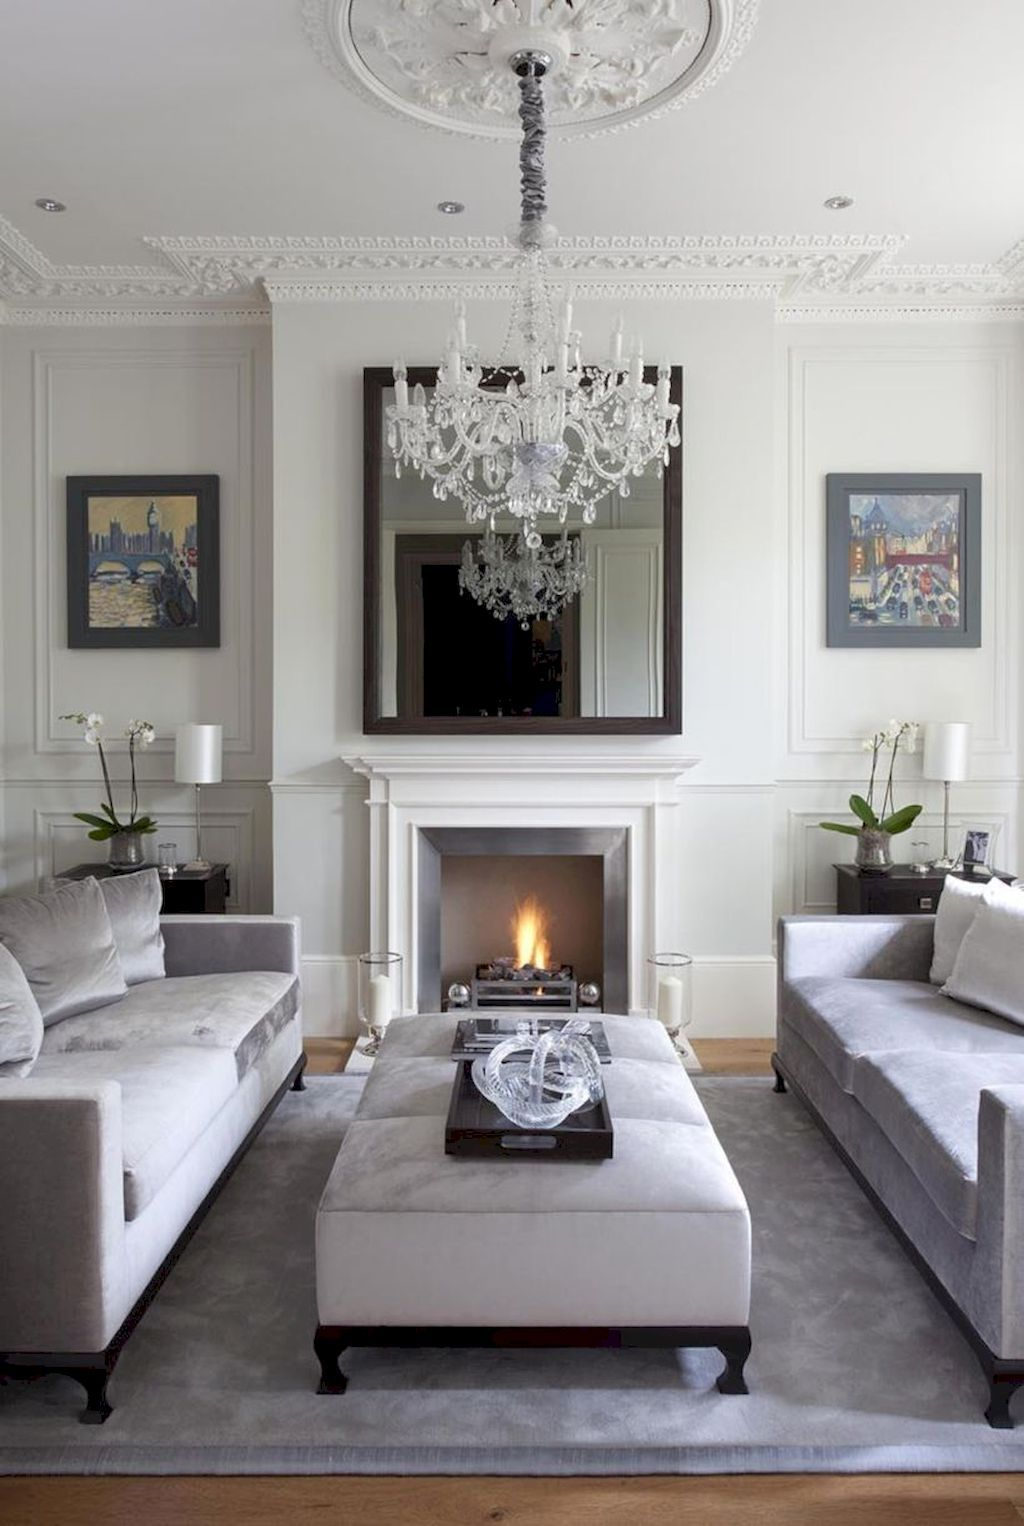 Fascinating Wonderful Residing Room Furnishings and Furnishings Decor Concepts images